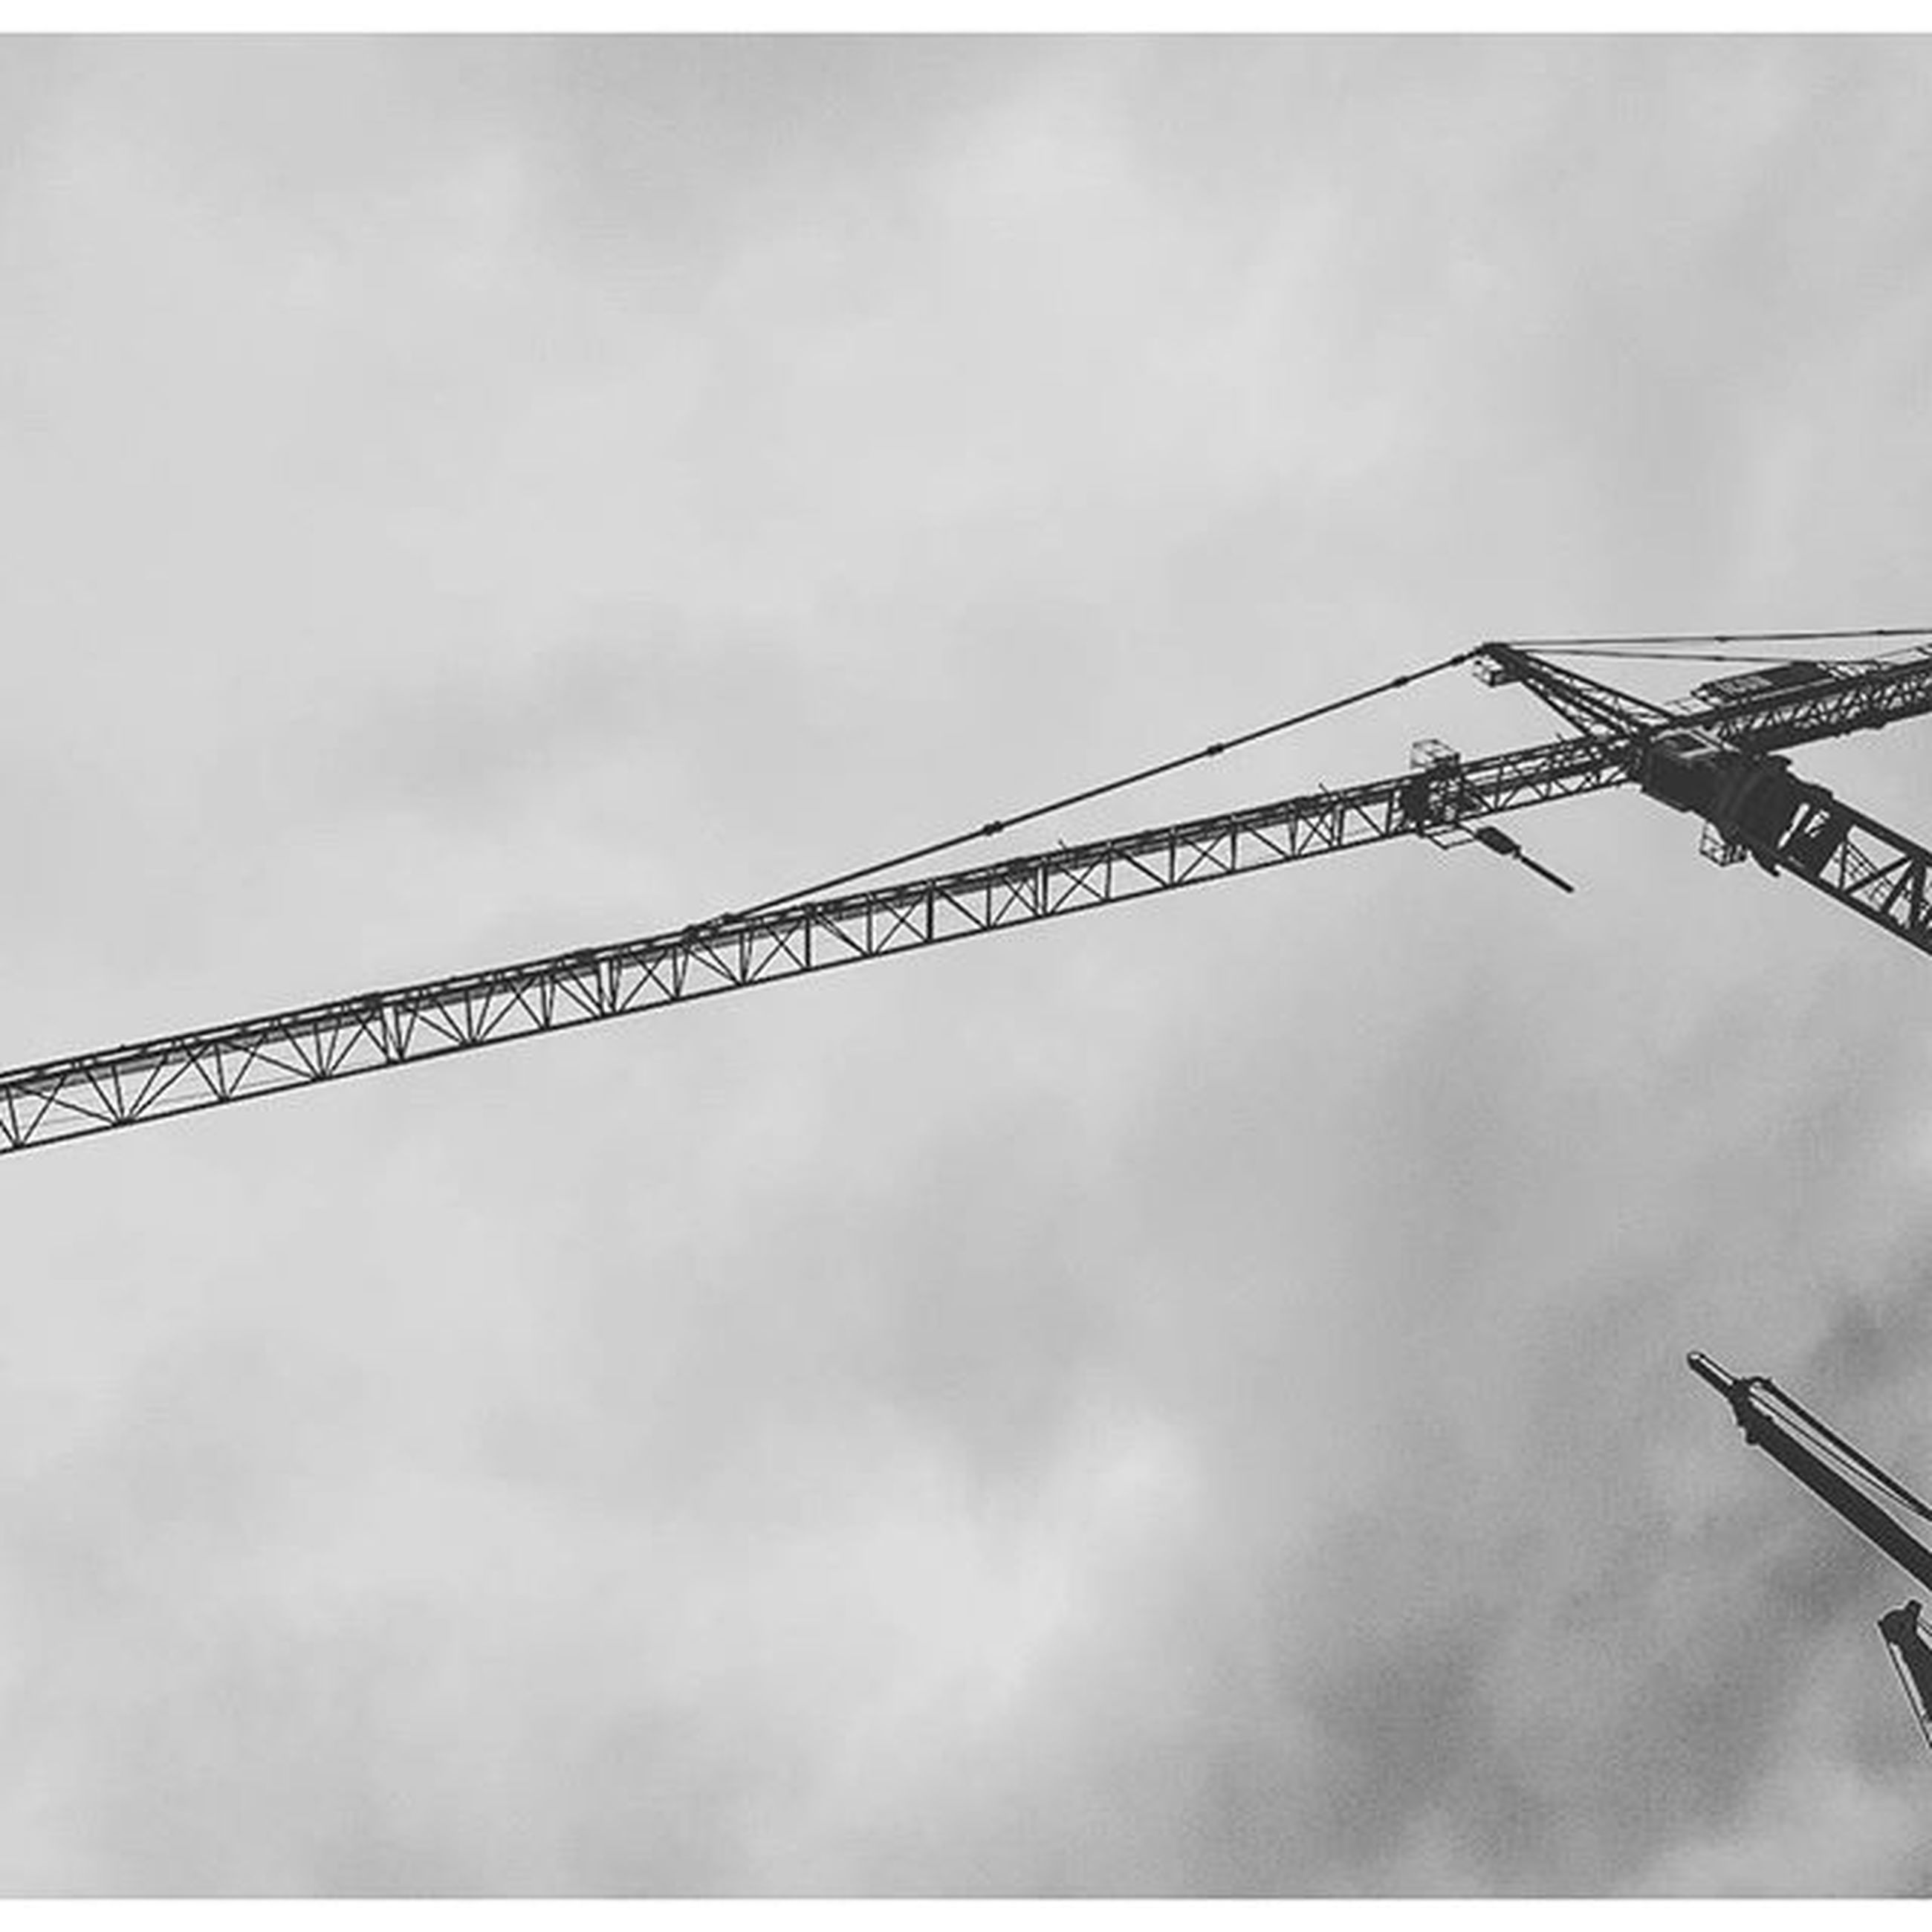 fuel and power generation, low angle view, sky, barbed wire, safety, construction site, protection, metal, connection, fence, crane - construction machinery, power supply, development, security, technology, electricity, day, construction, crane, outdoors